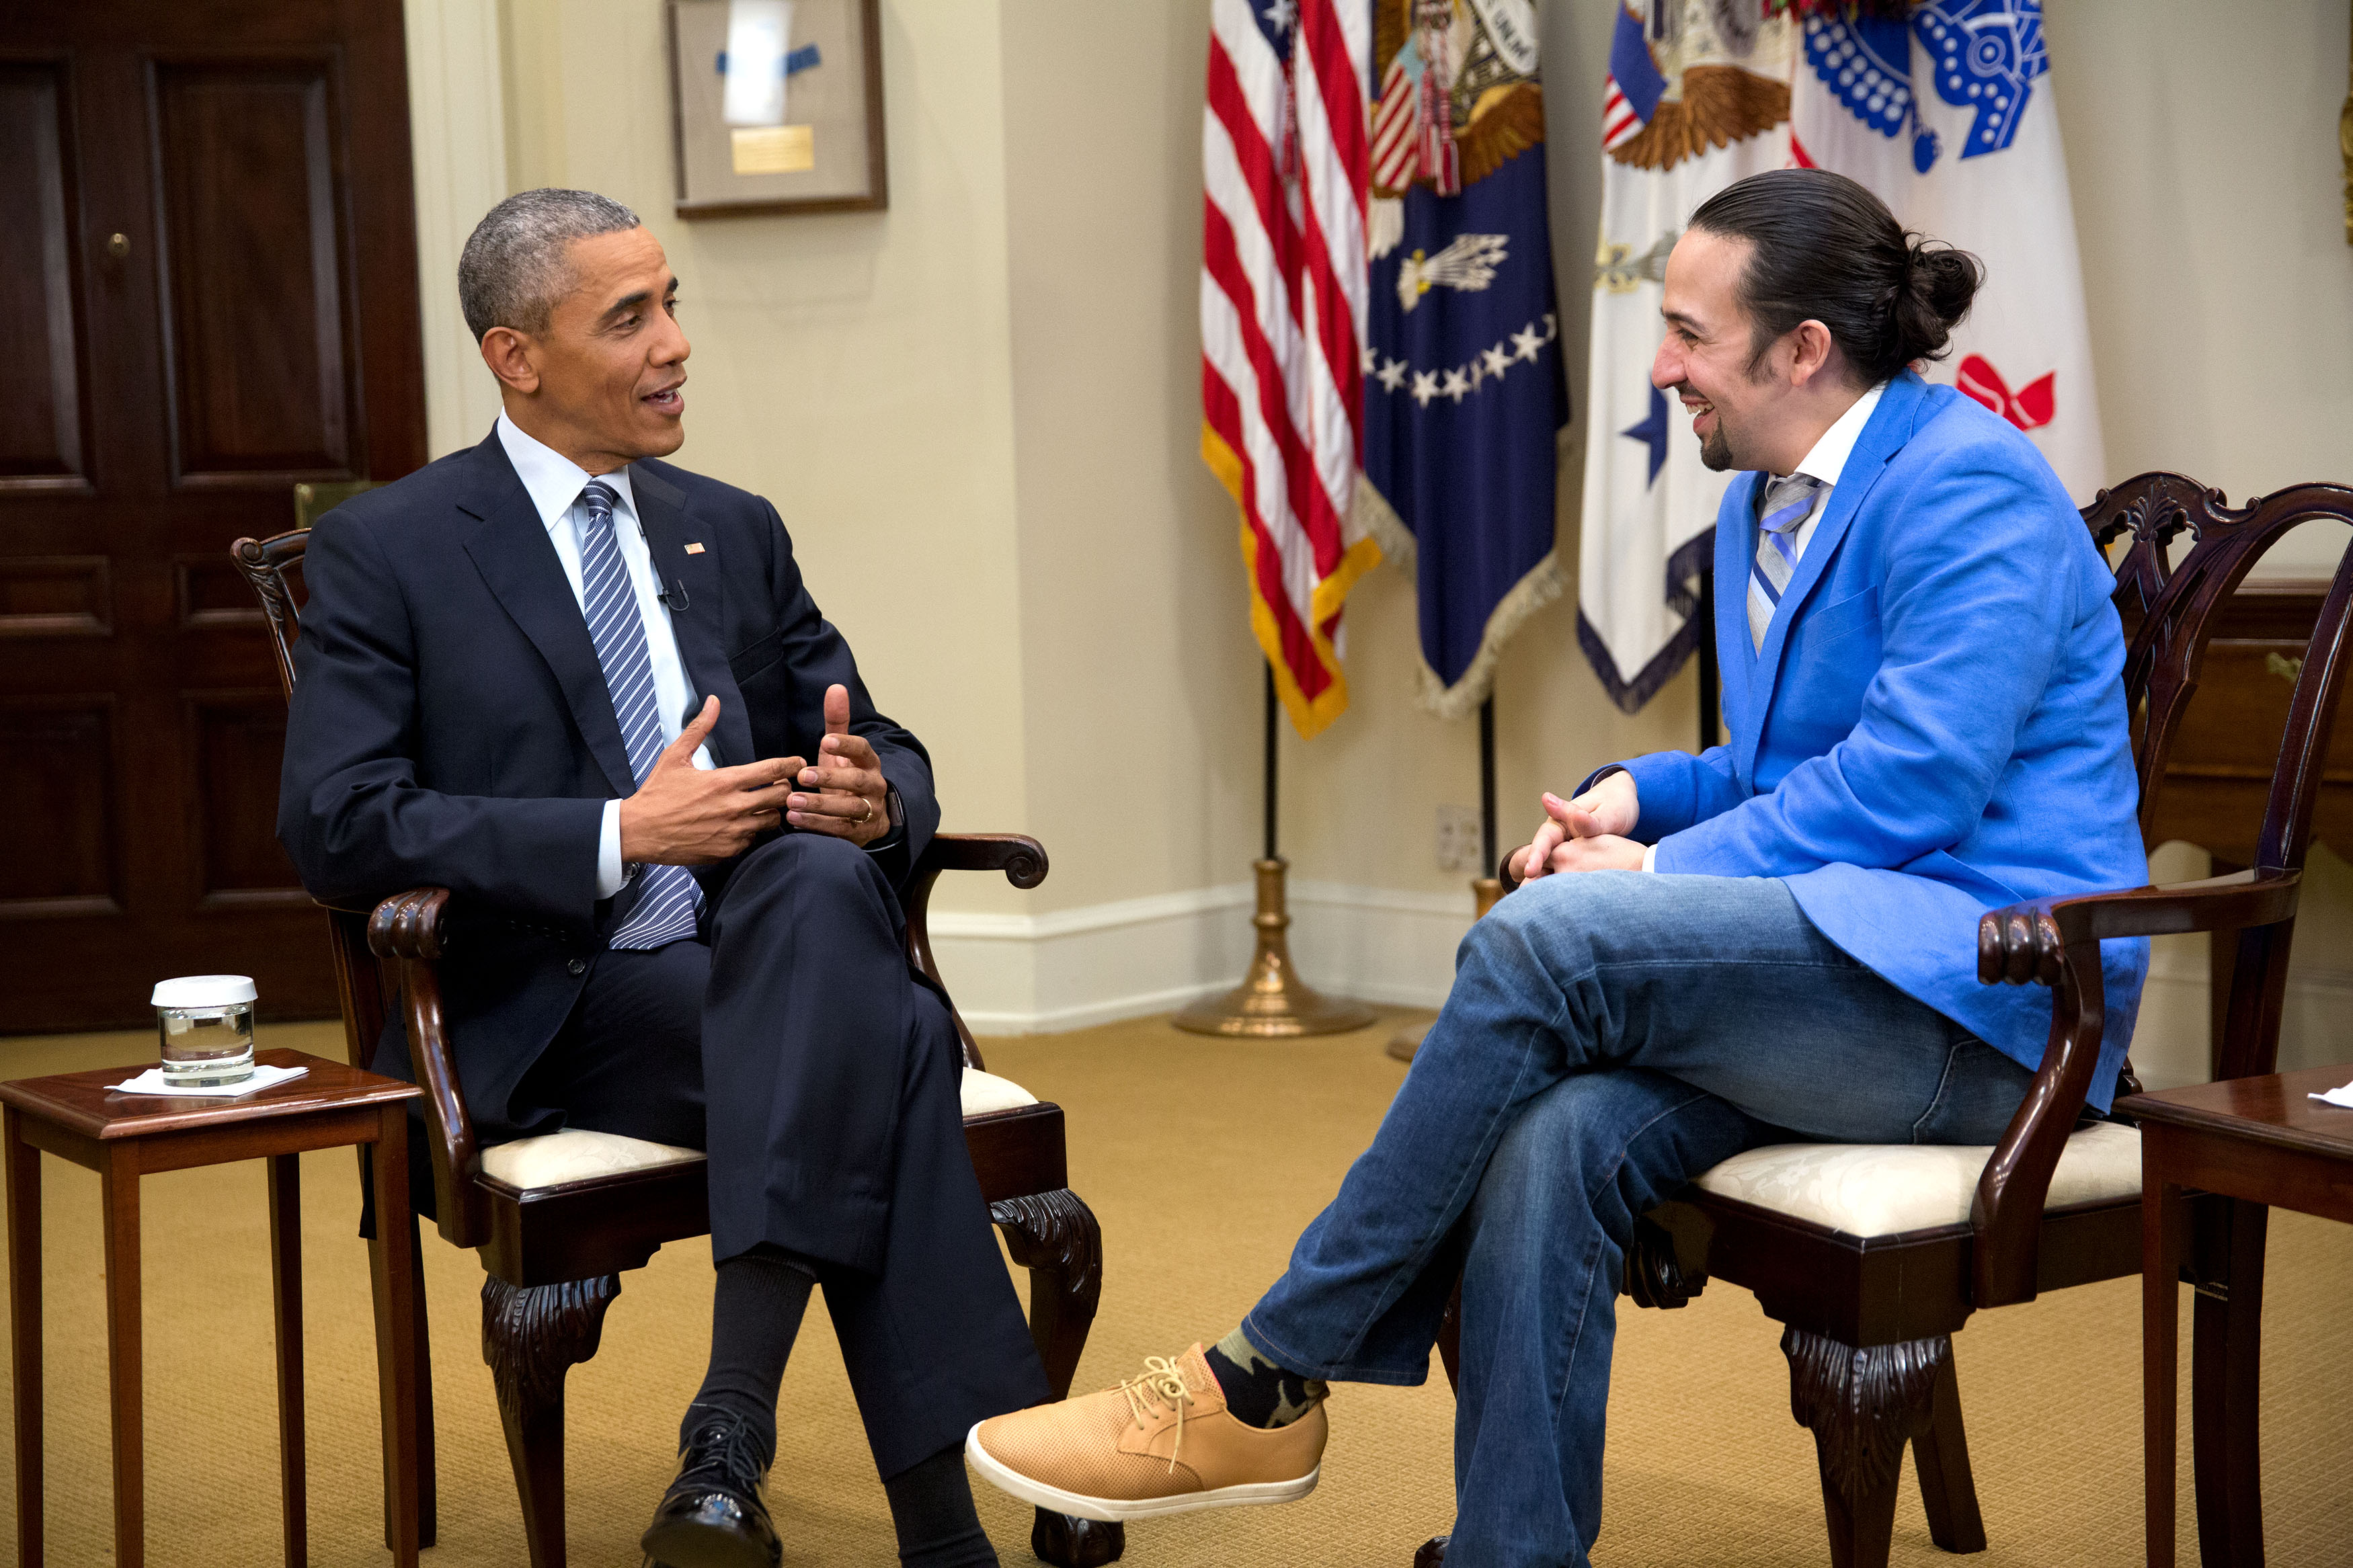 President Barack Obama and Lin-Manuel Miranda in the West Wing of the White House